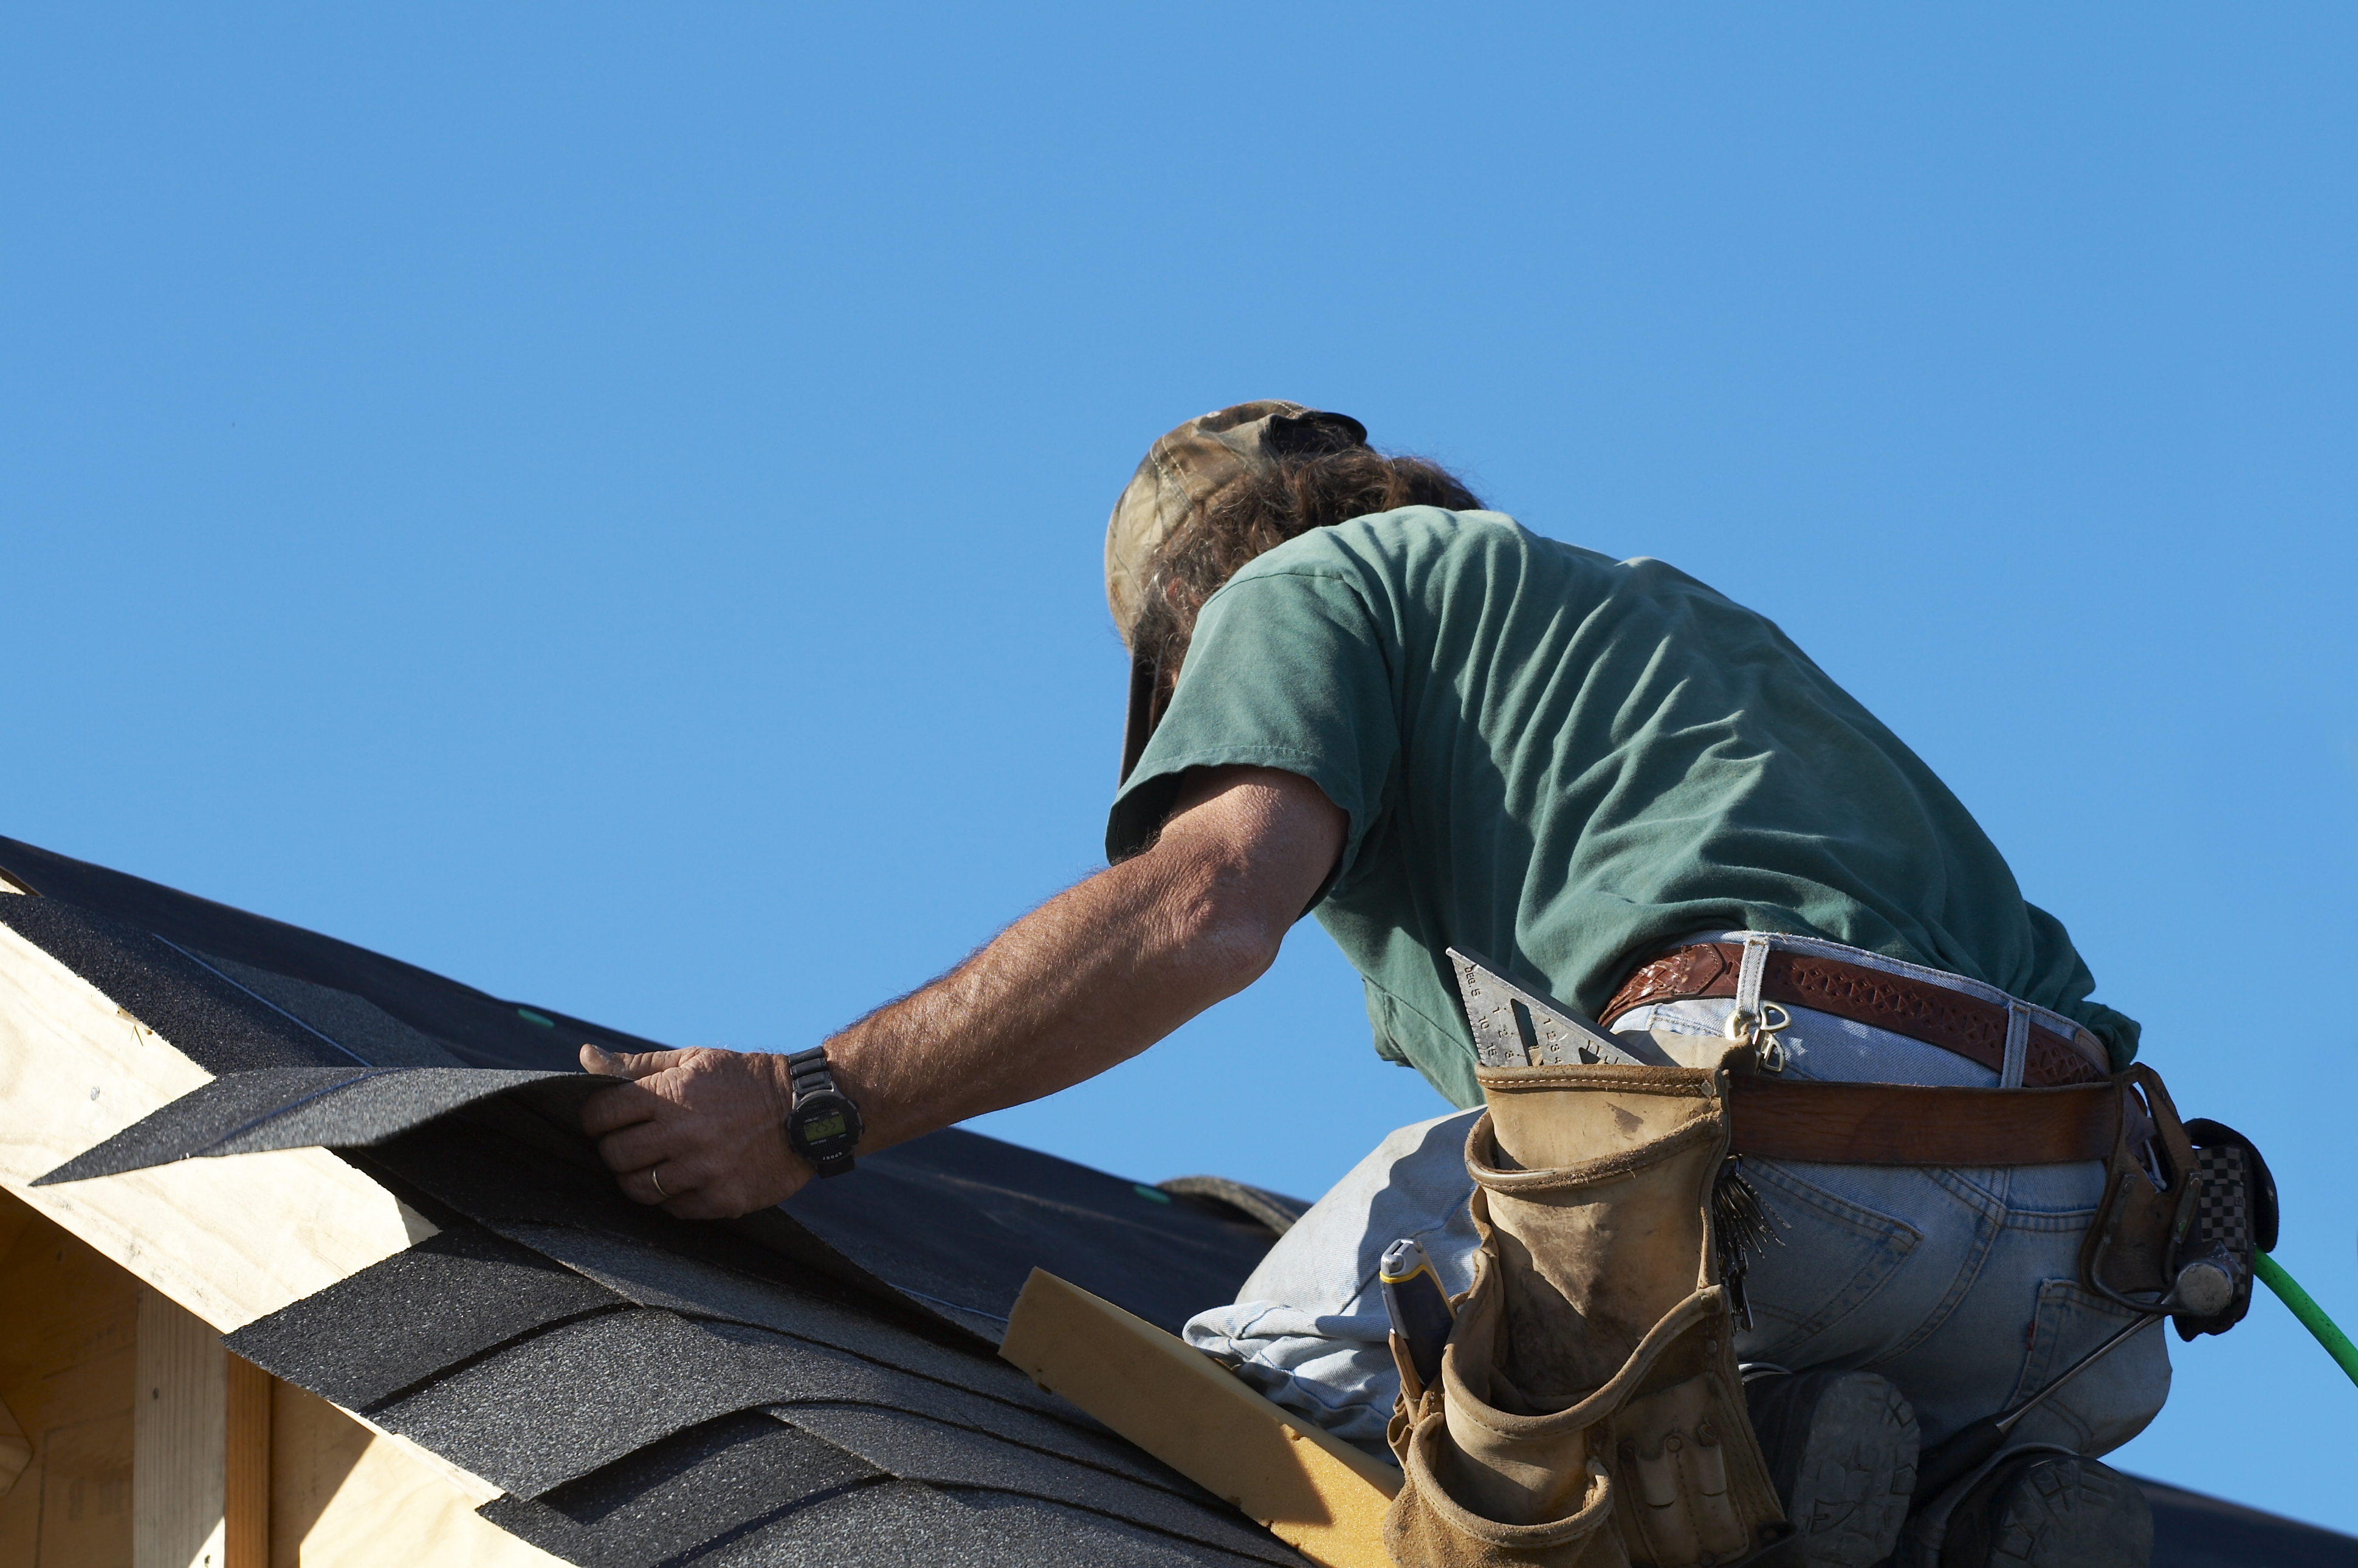 Questions to Ask When Hiring a Roofer